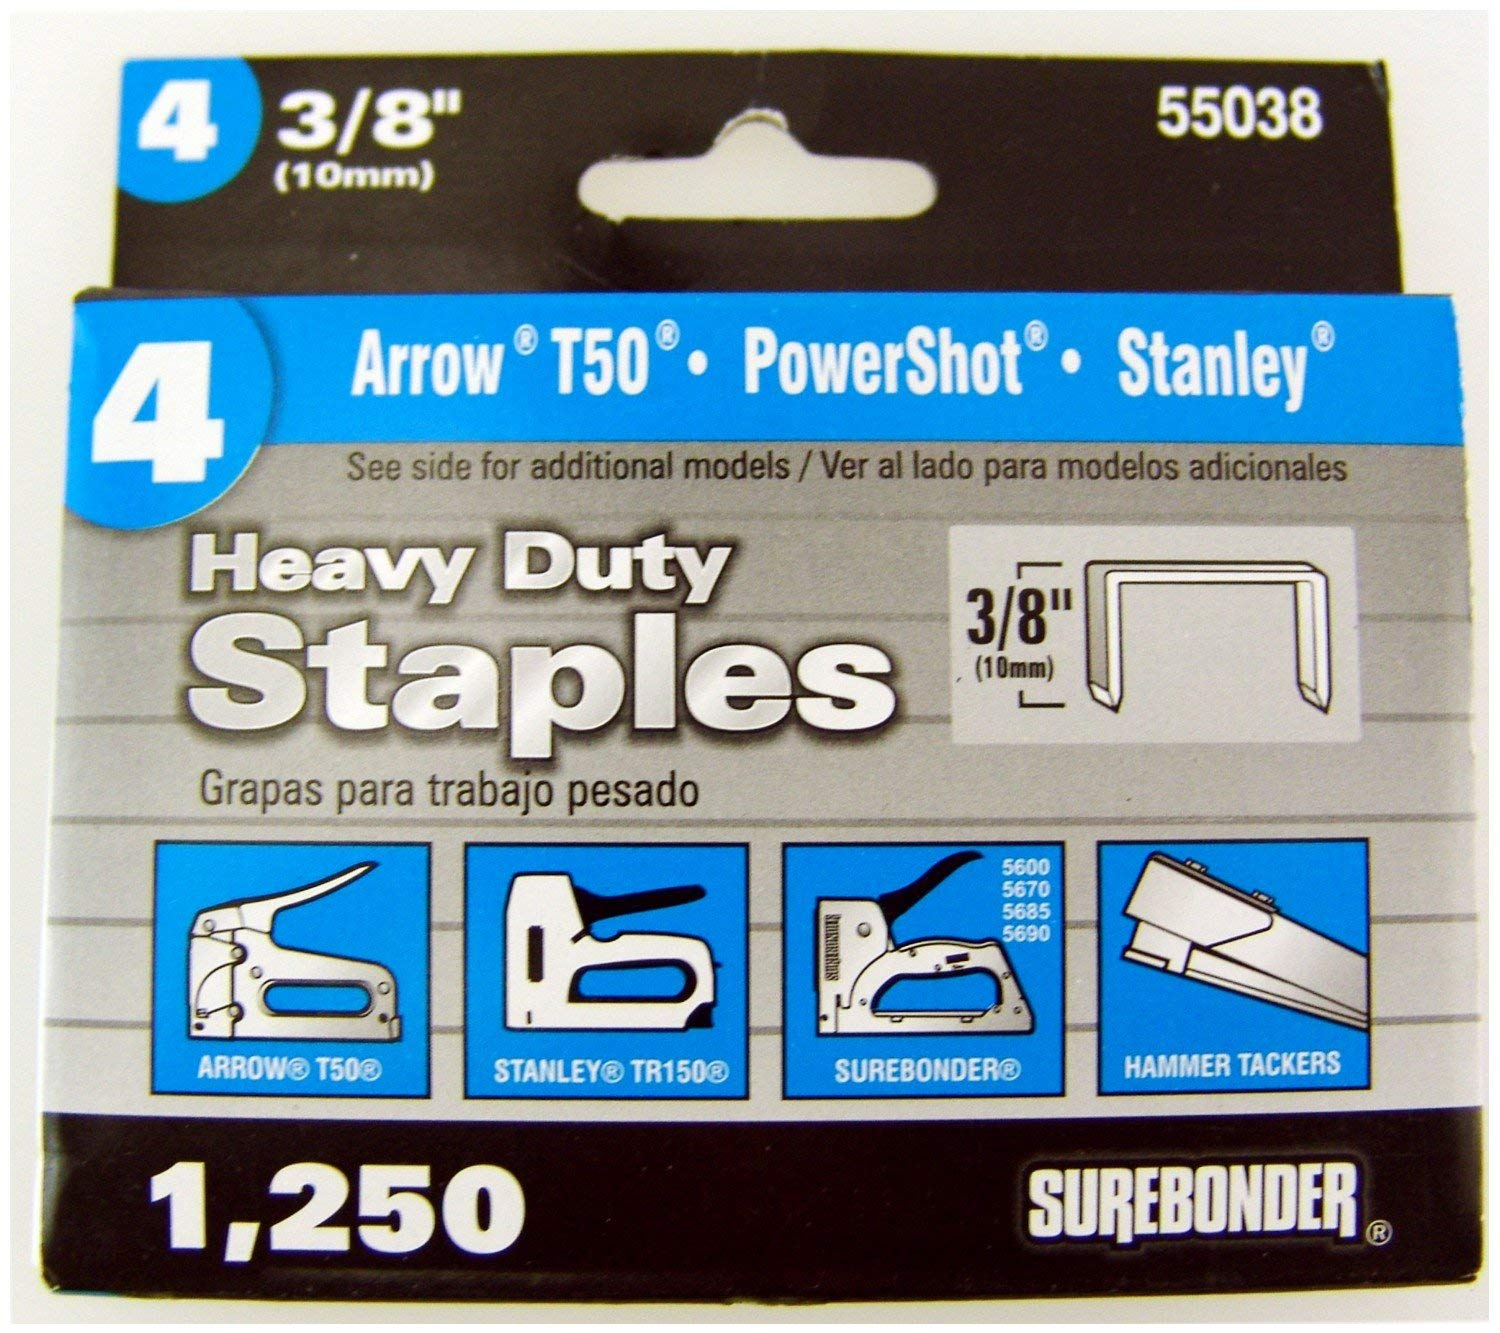 Heavy Duty, Chisel Point, 3/8'' Arrow T50 Type Staple 1250 Count, 5 Pack by Surebonder (Image #1)